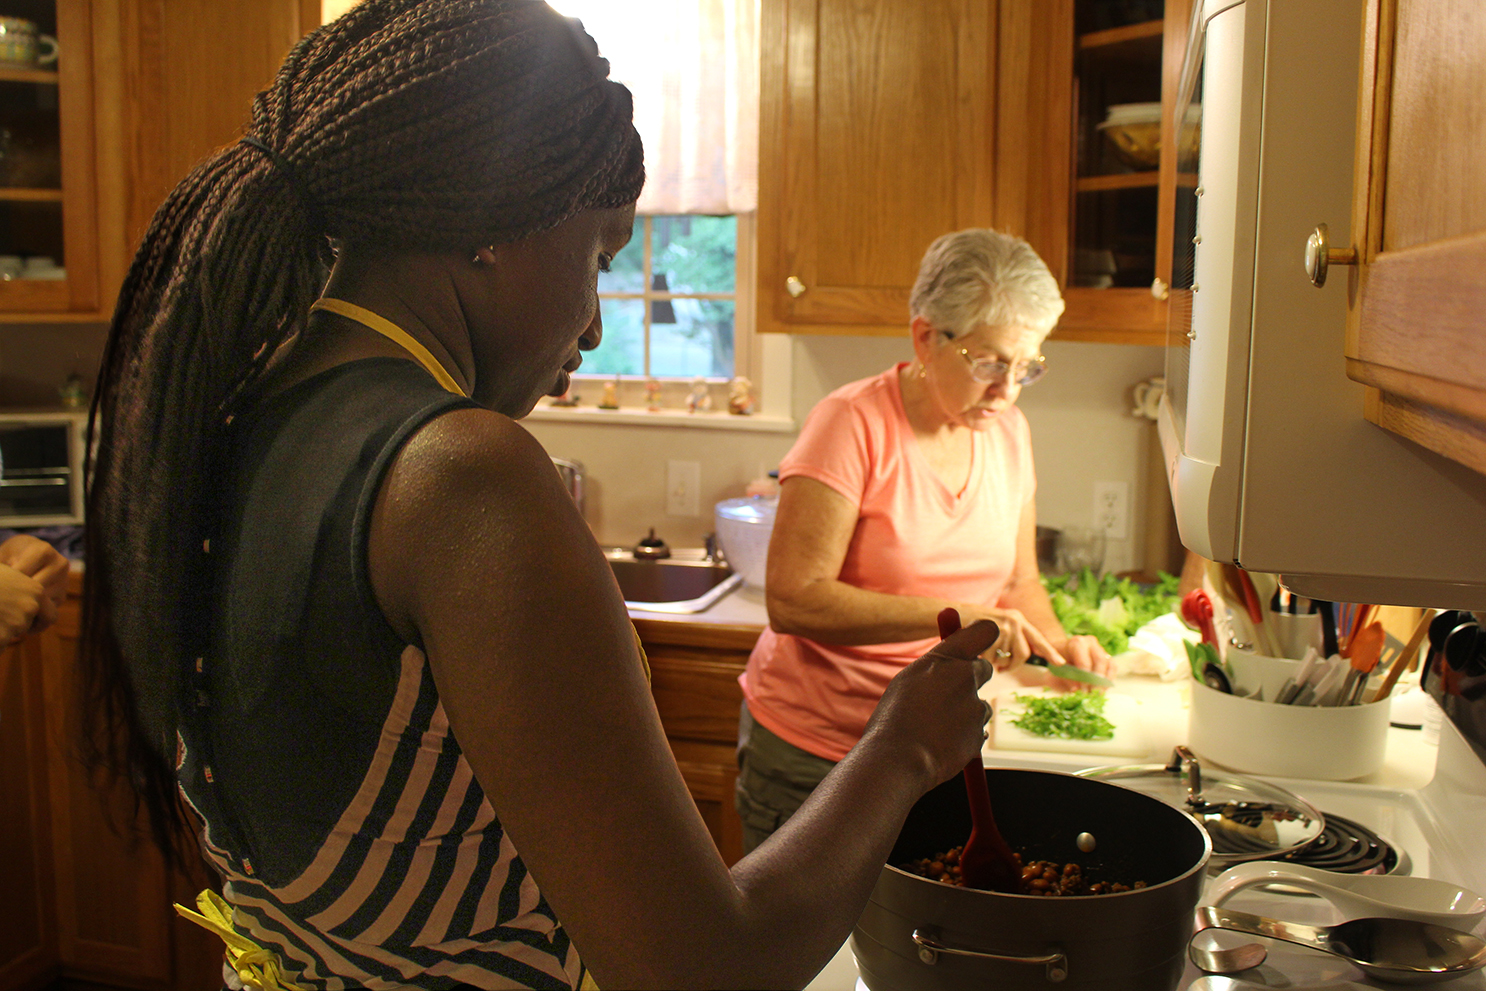 Northeast student Aji Nijie, left, and Morris prepare dinner together at Morris' house one Friday evening. The professor welcomes students into her home each weekend to share a home cooked meal and a small devotion.